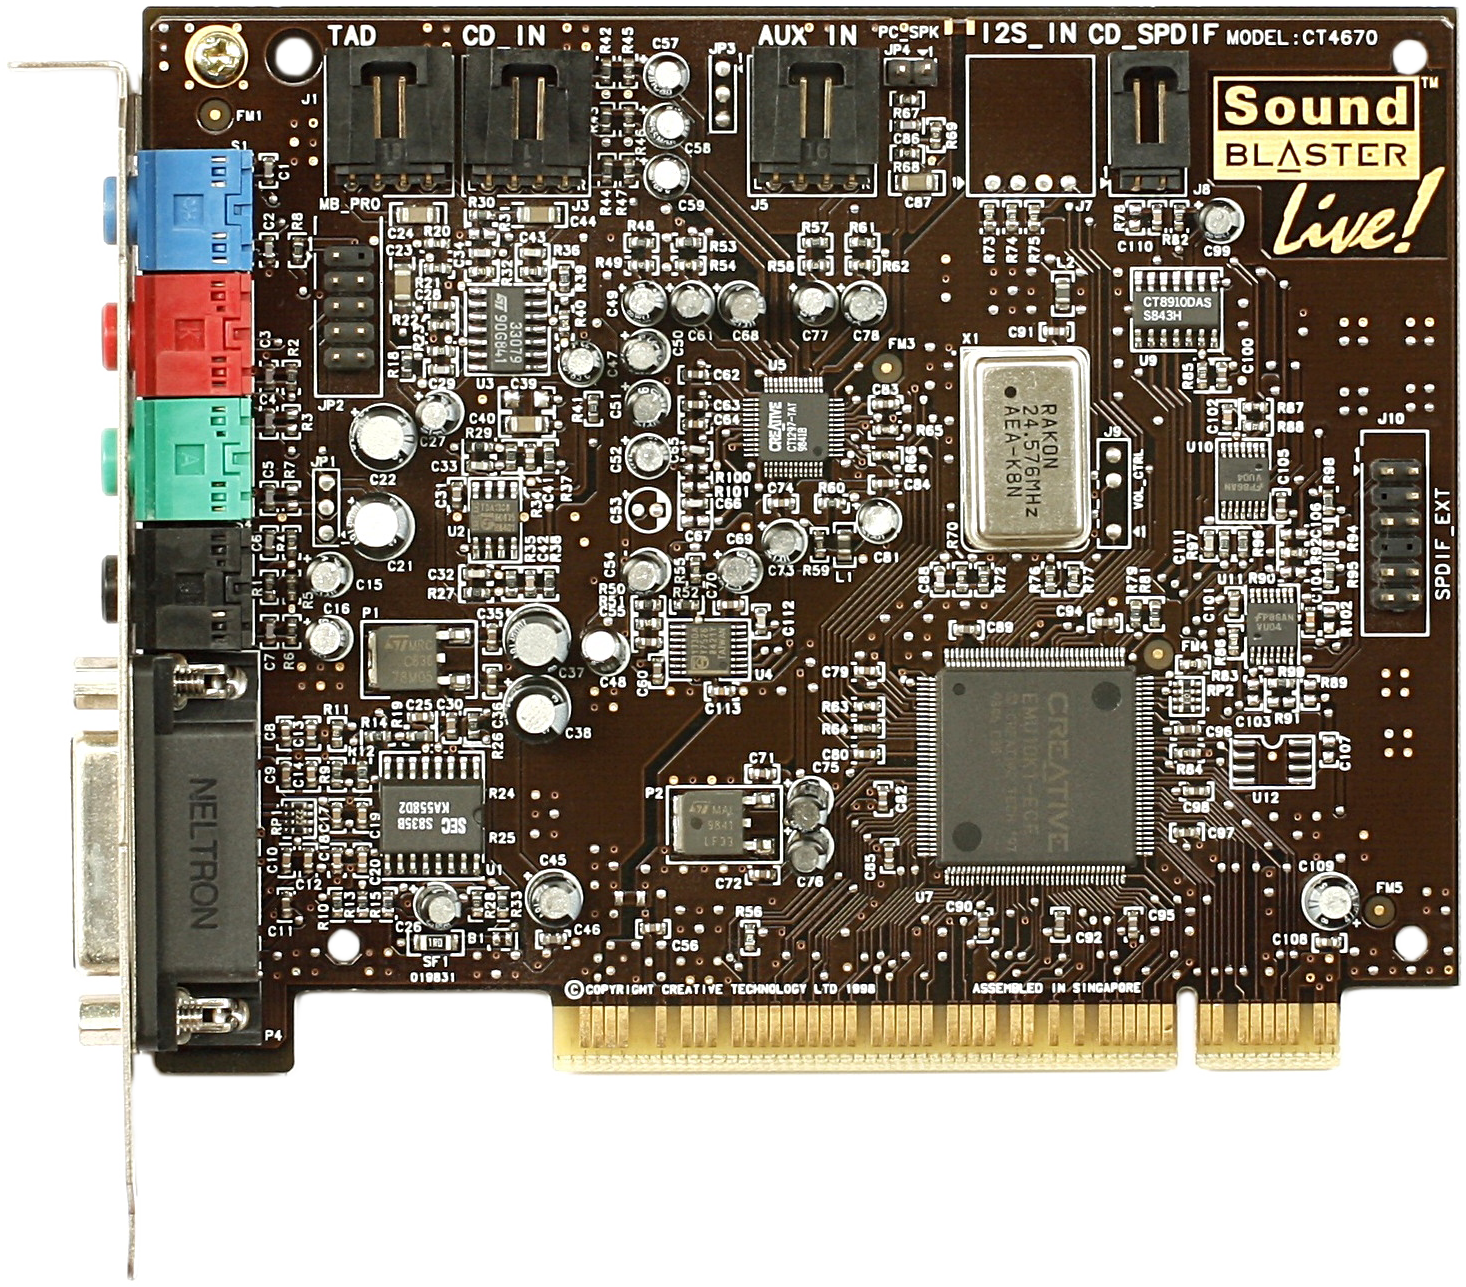 ASUS C-MEDIA AUDIO DEVICE 64 BIT DRIVER